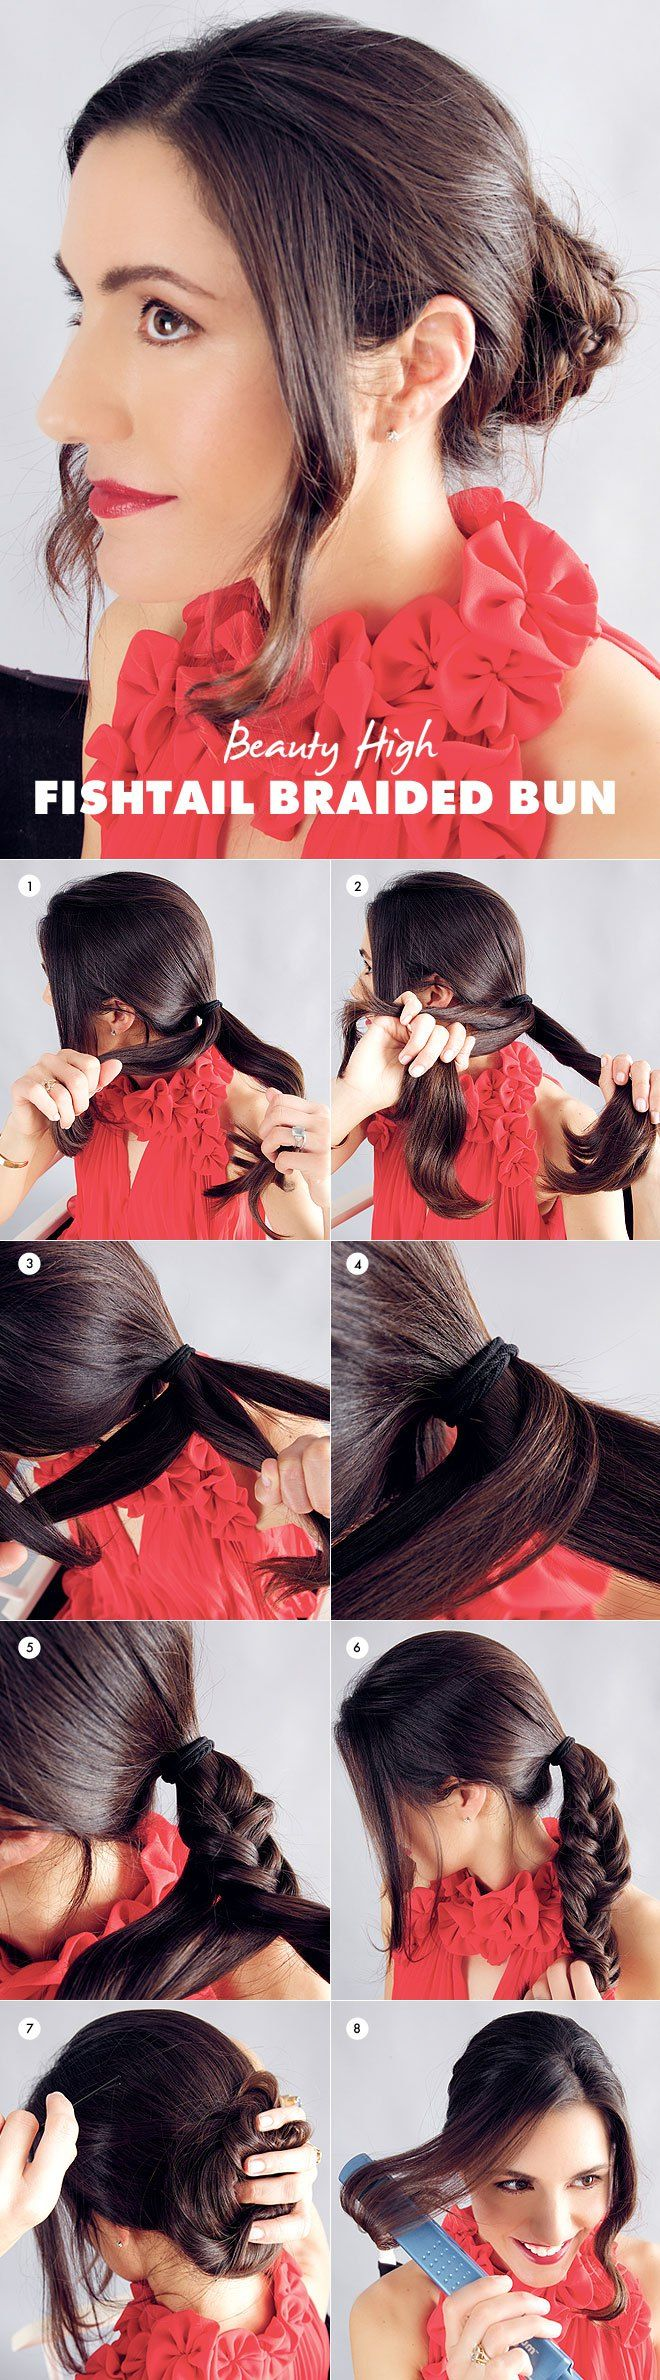 How to Get a Fishtail Braided Bun | Beauty High